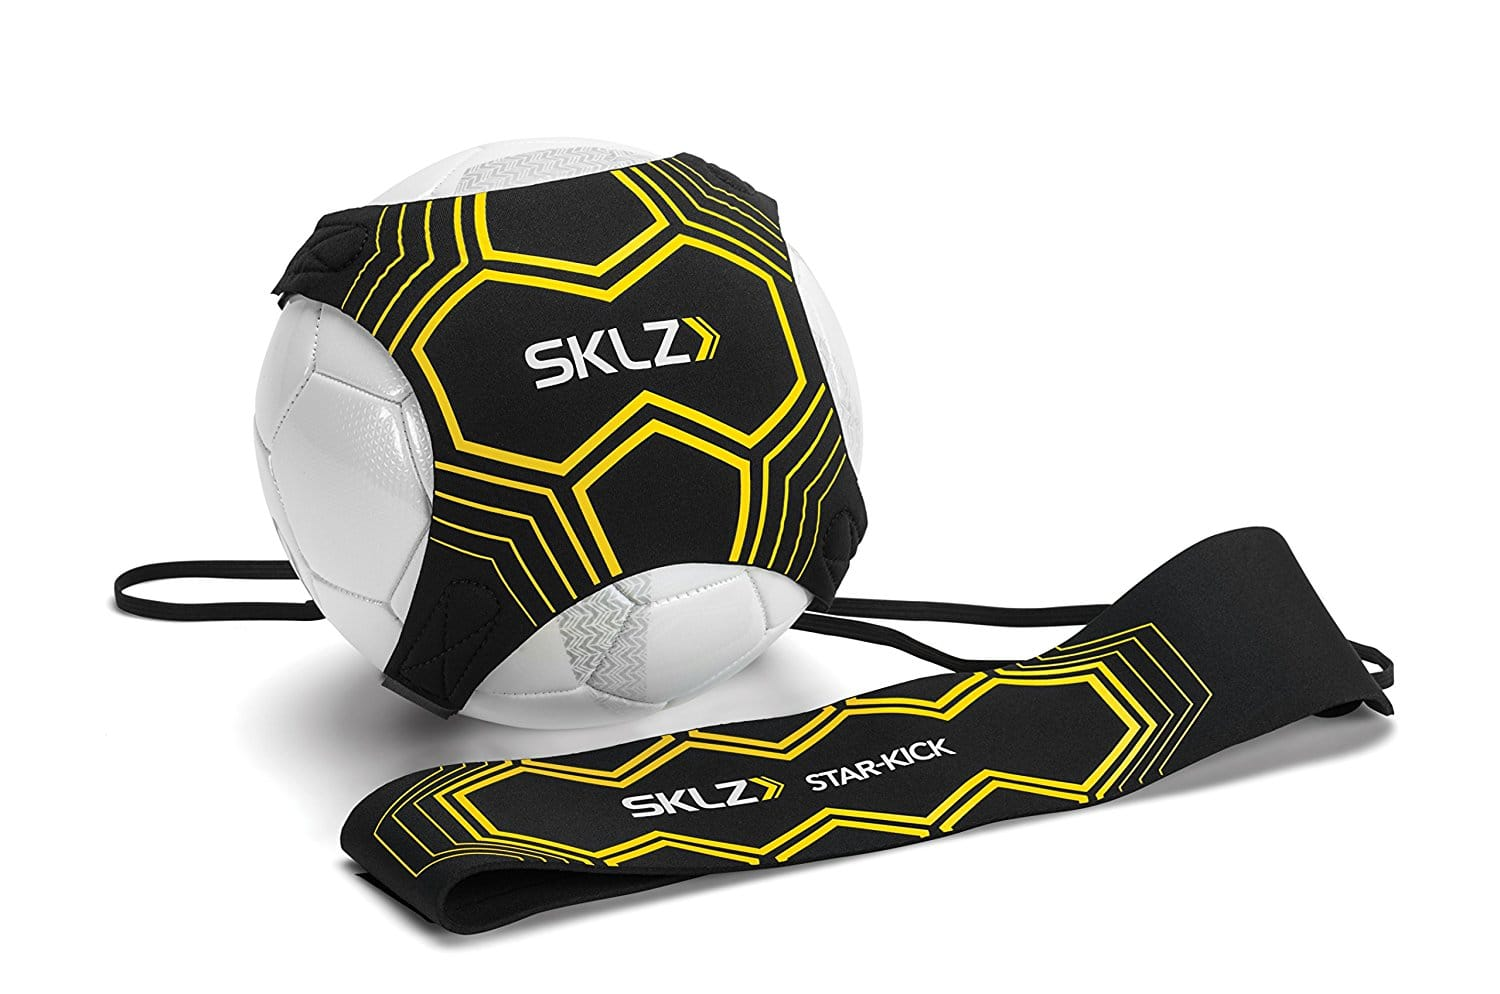 SKLZ Star-Kick Hands Free Solo Soccer Trainer- Fits Ball Size 3, 4, and 5 $7.98